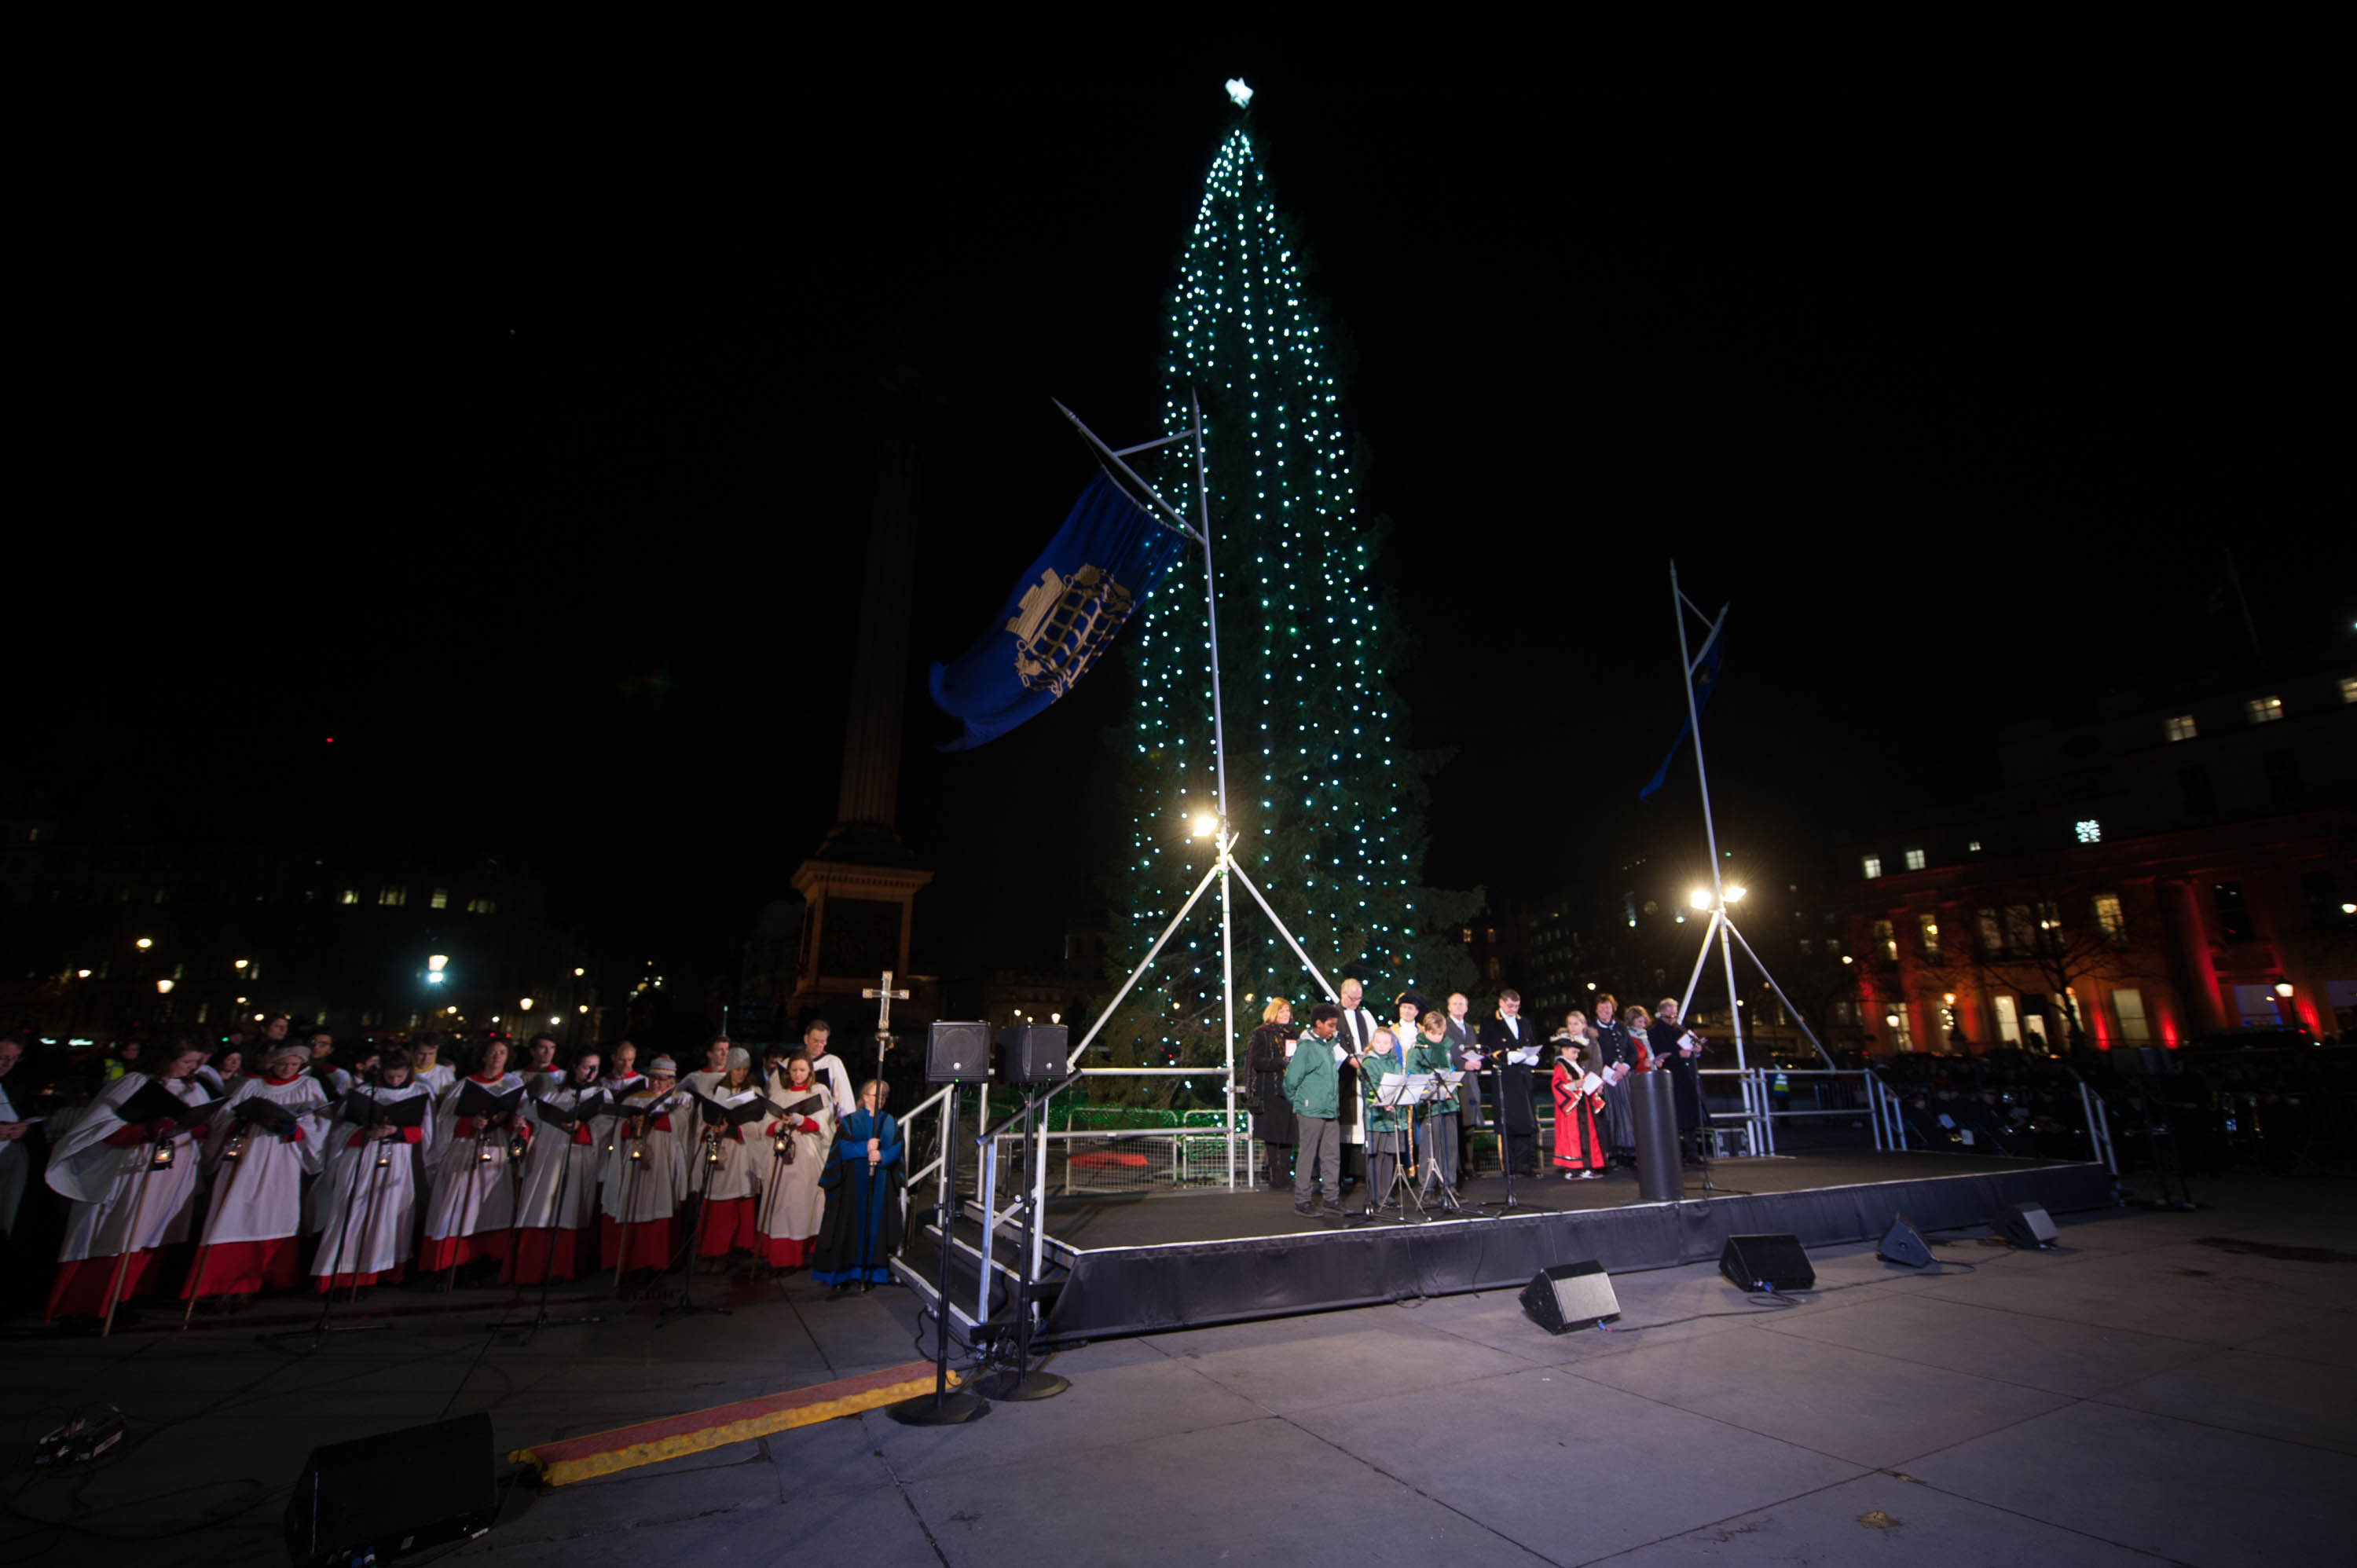 christmas tree at night at 2017's lighting up ceremony